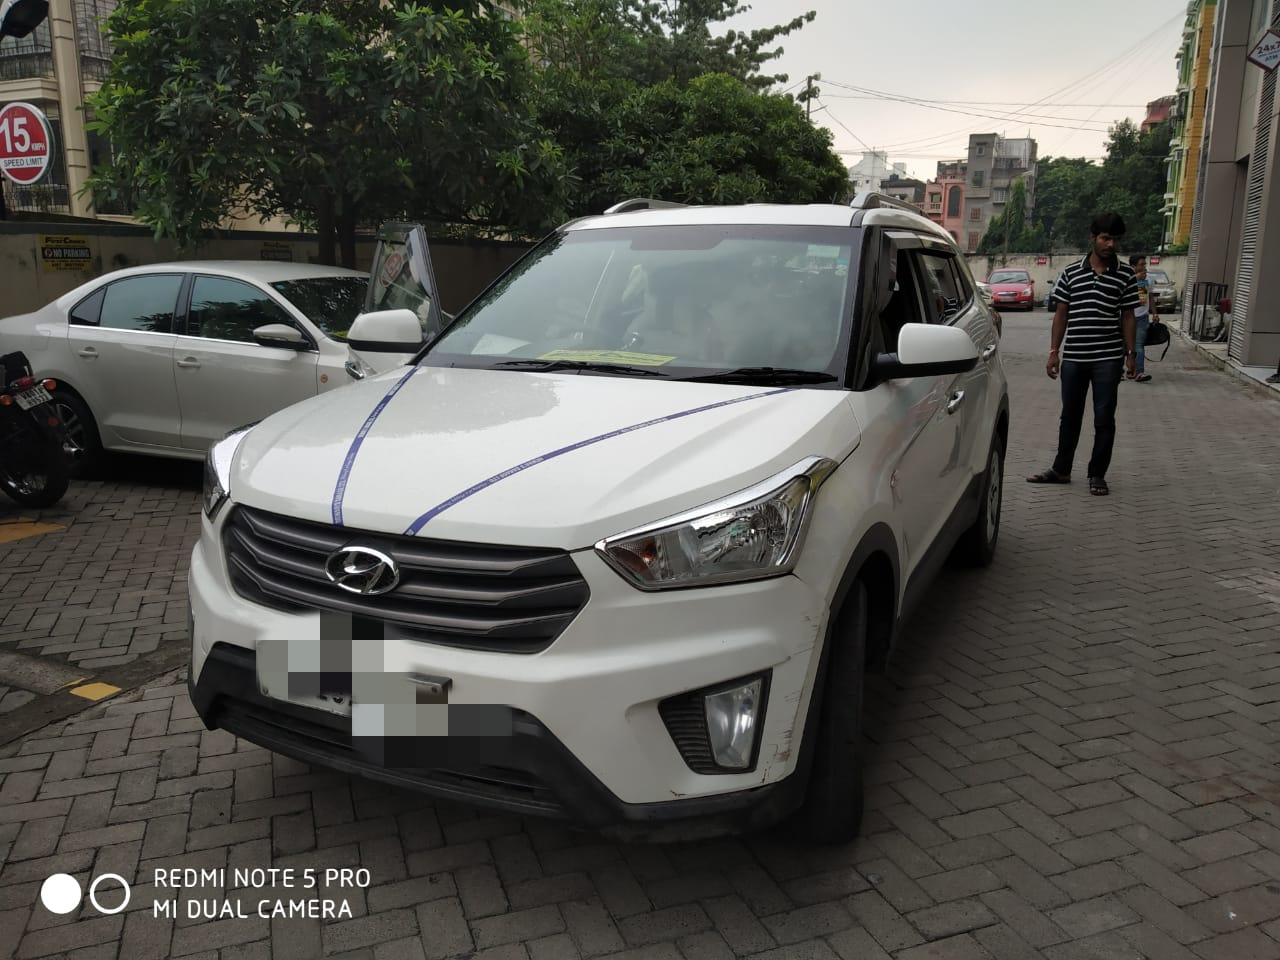 Hyundai Creta 1 4 Crdi S Mahindra First Choice